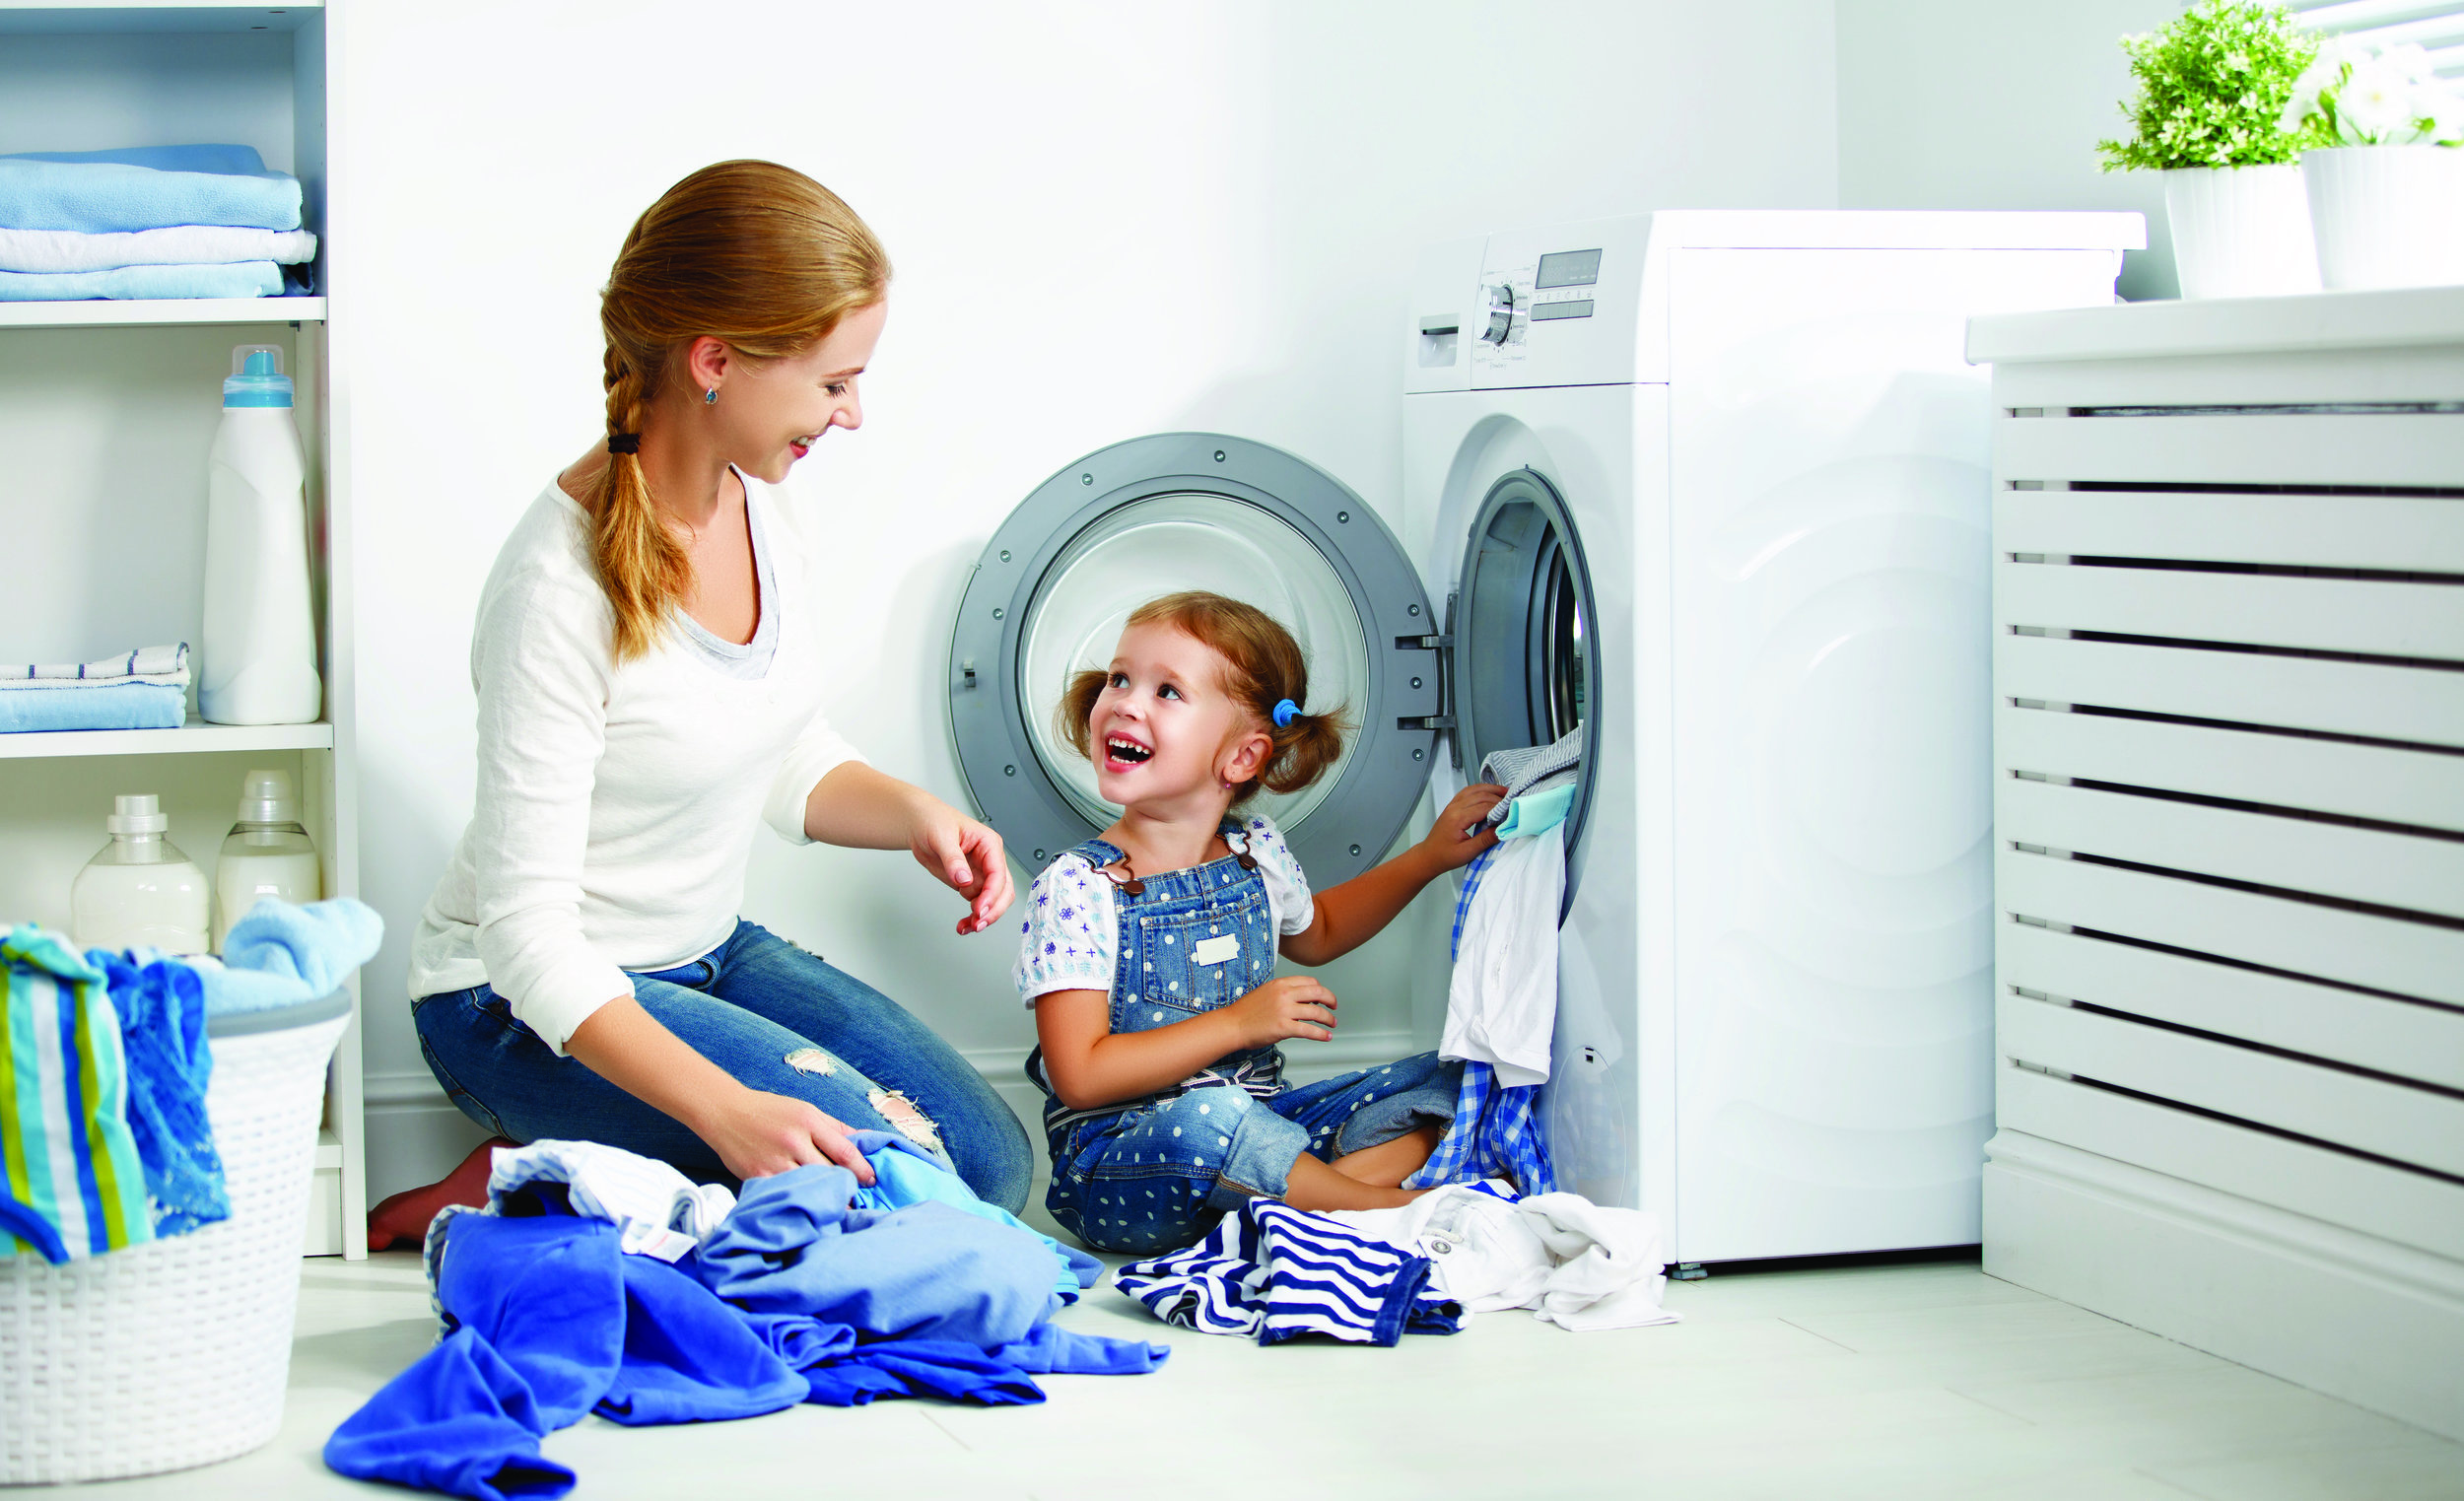 666384222family_mother_and_child_girl__in_laundry__SIIQaGRI45lrgHeOfLl93vt18q0ABlZBh_cmyk_l.jpg